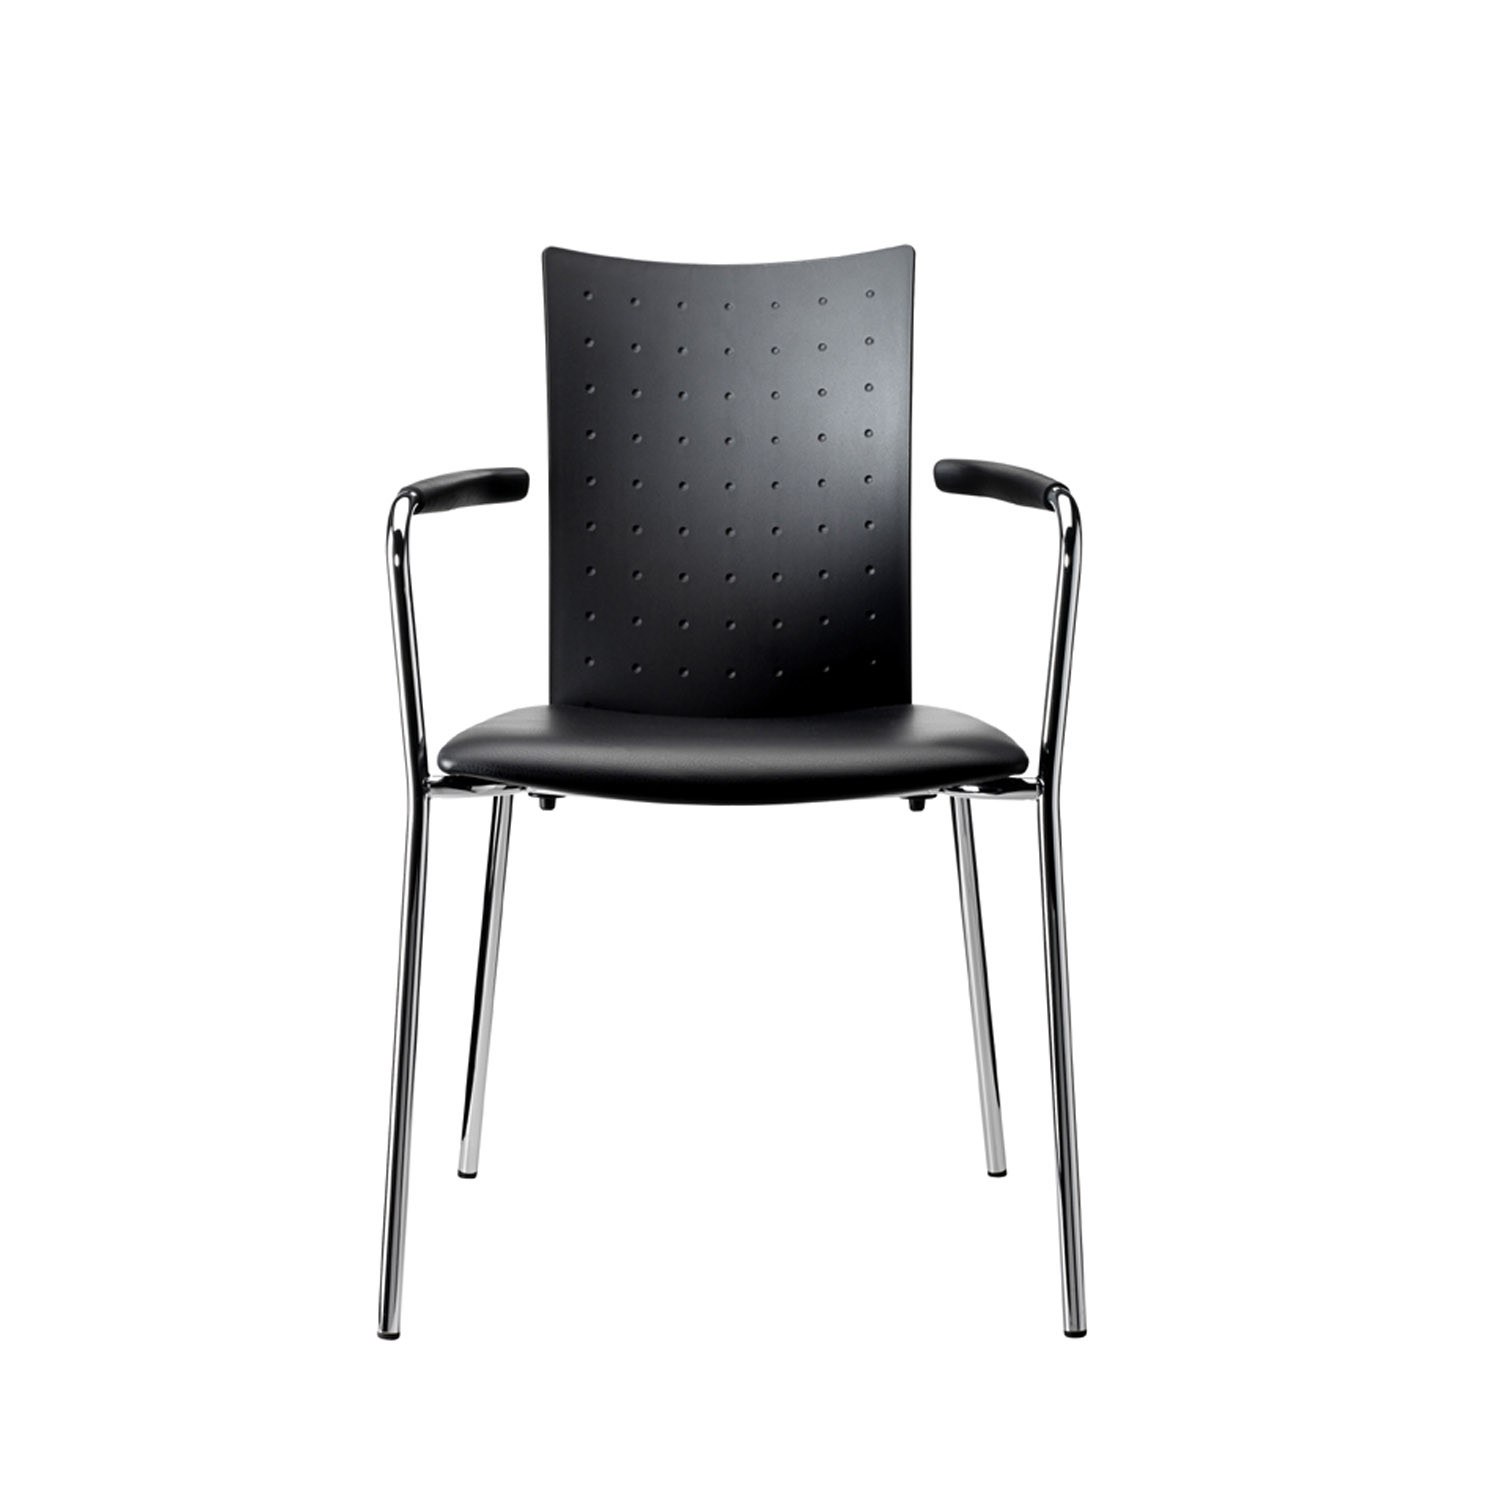 Sala Office Armchair by Randers+Radius